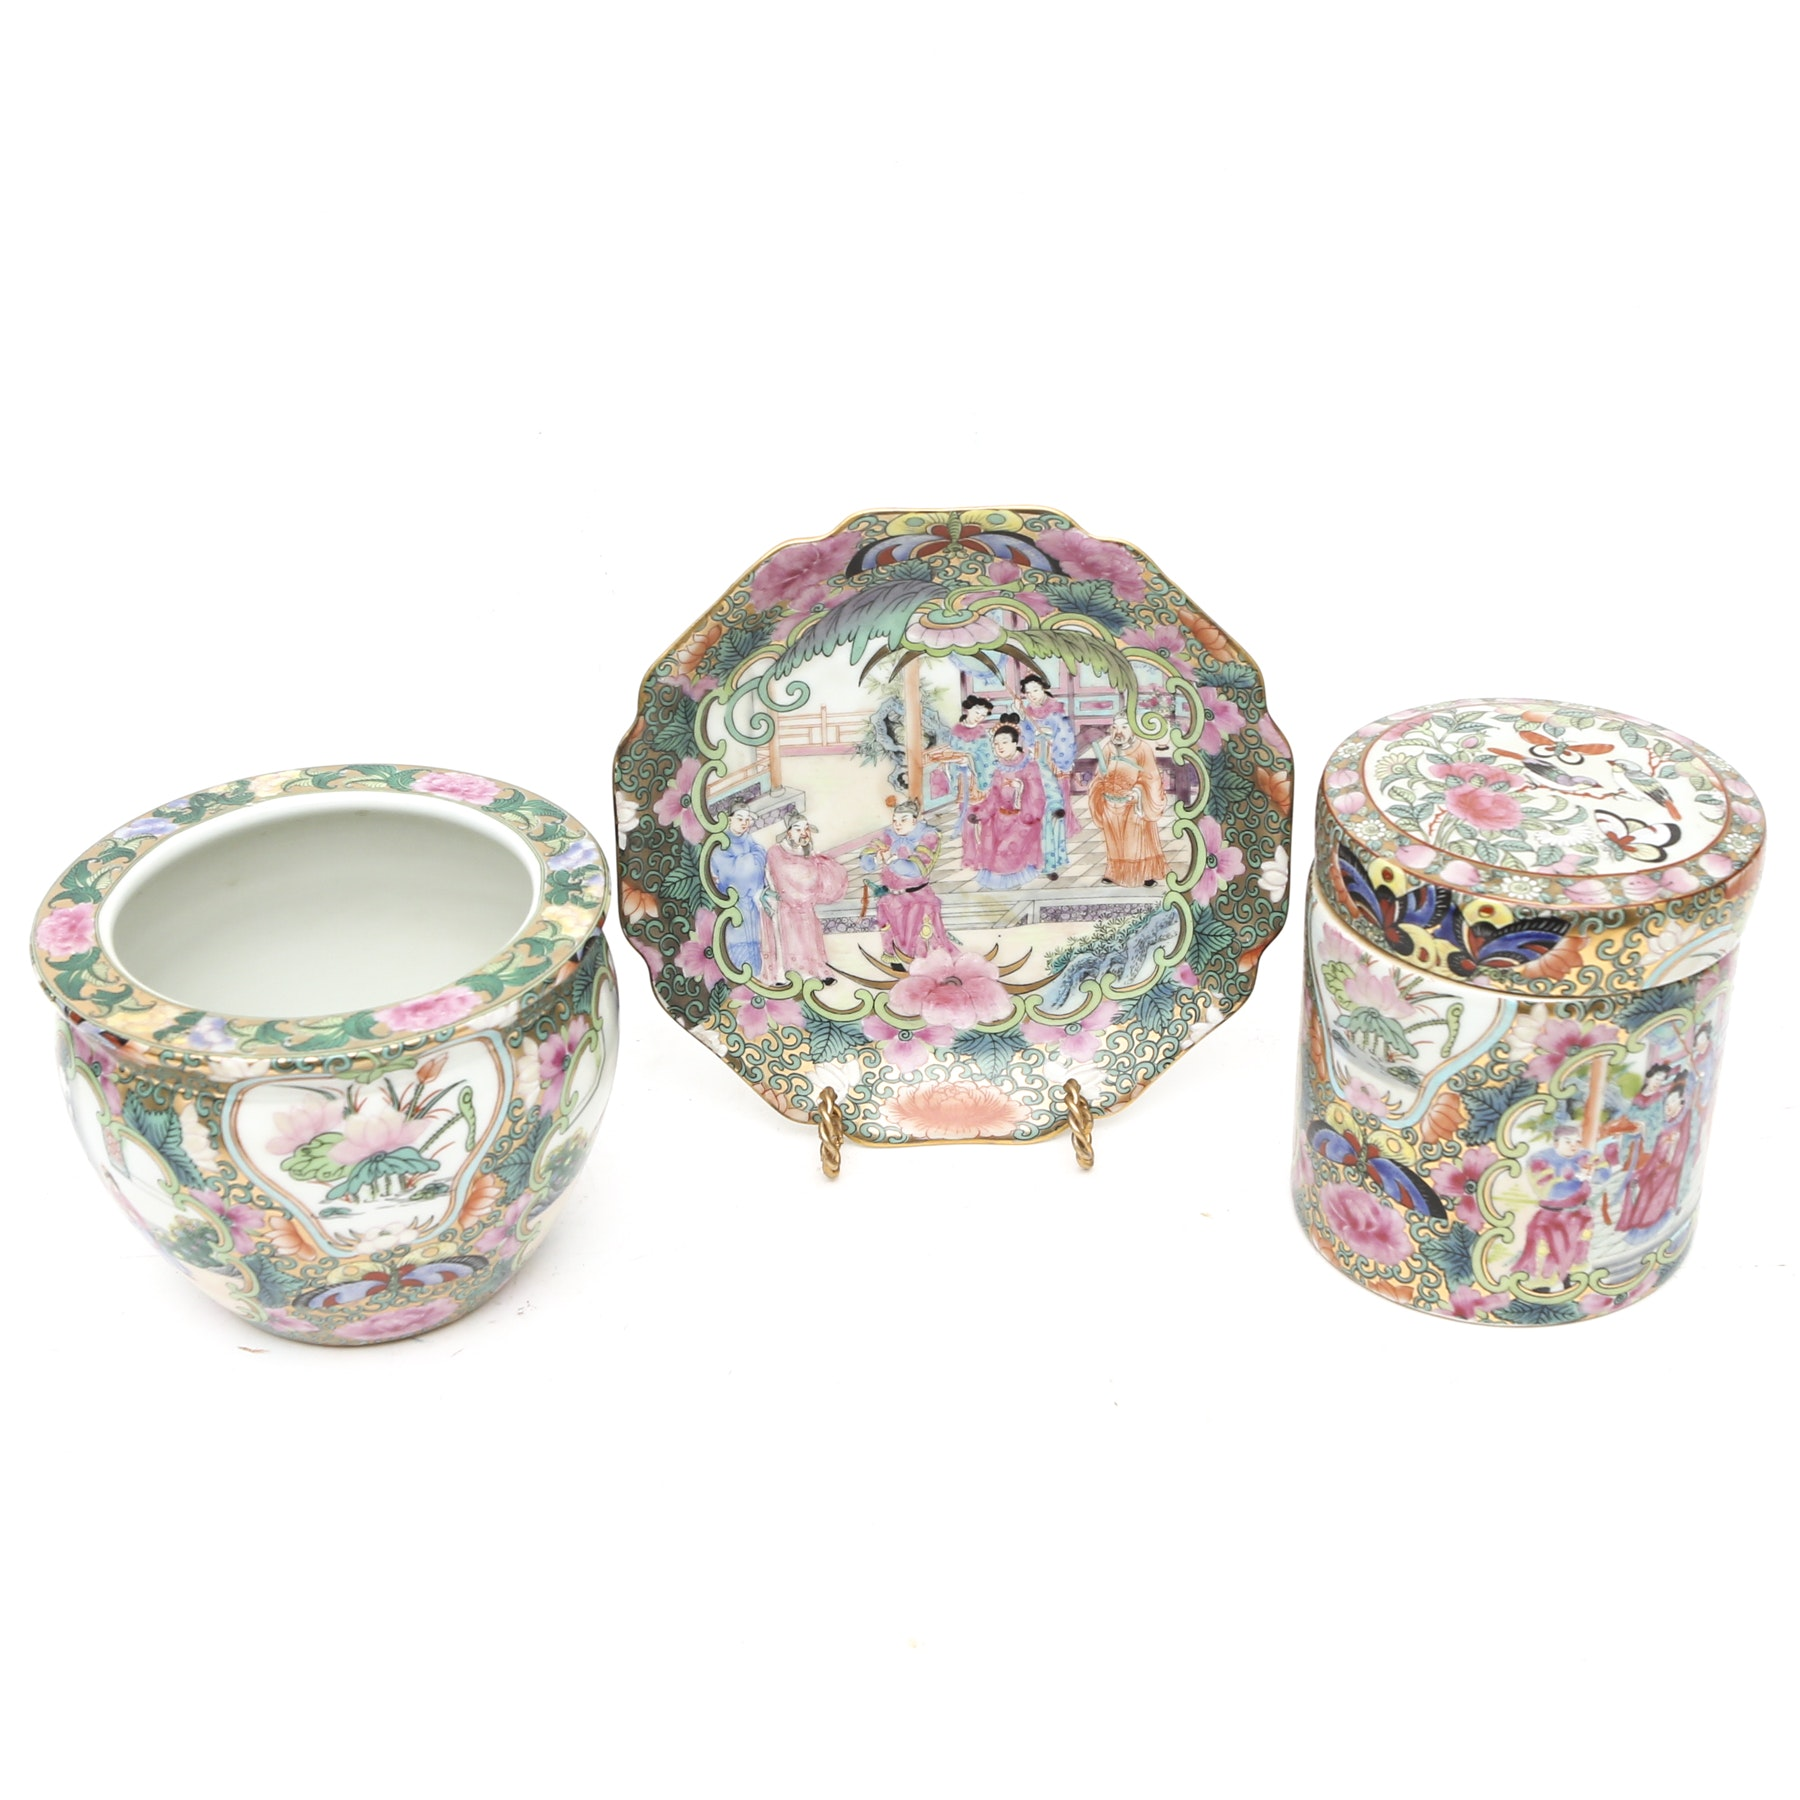 Chinese Plate, Vase and Lidded Jar